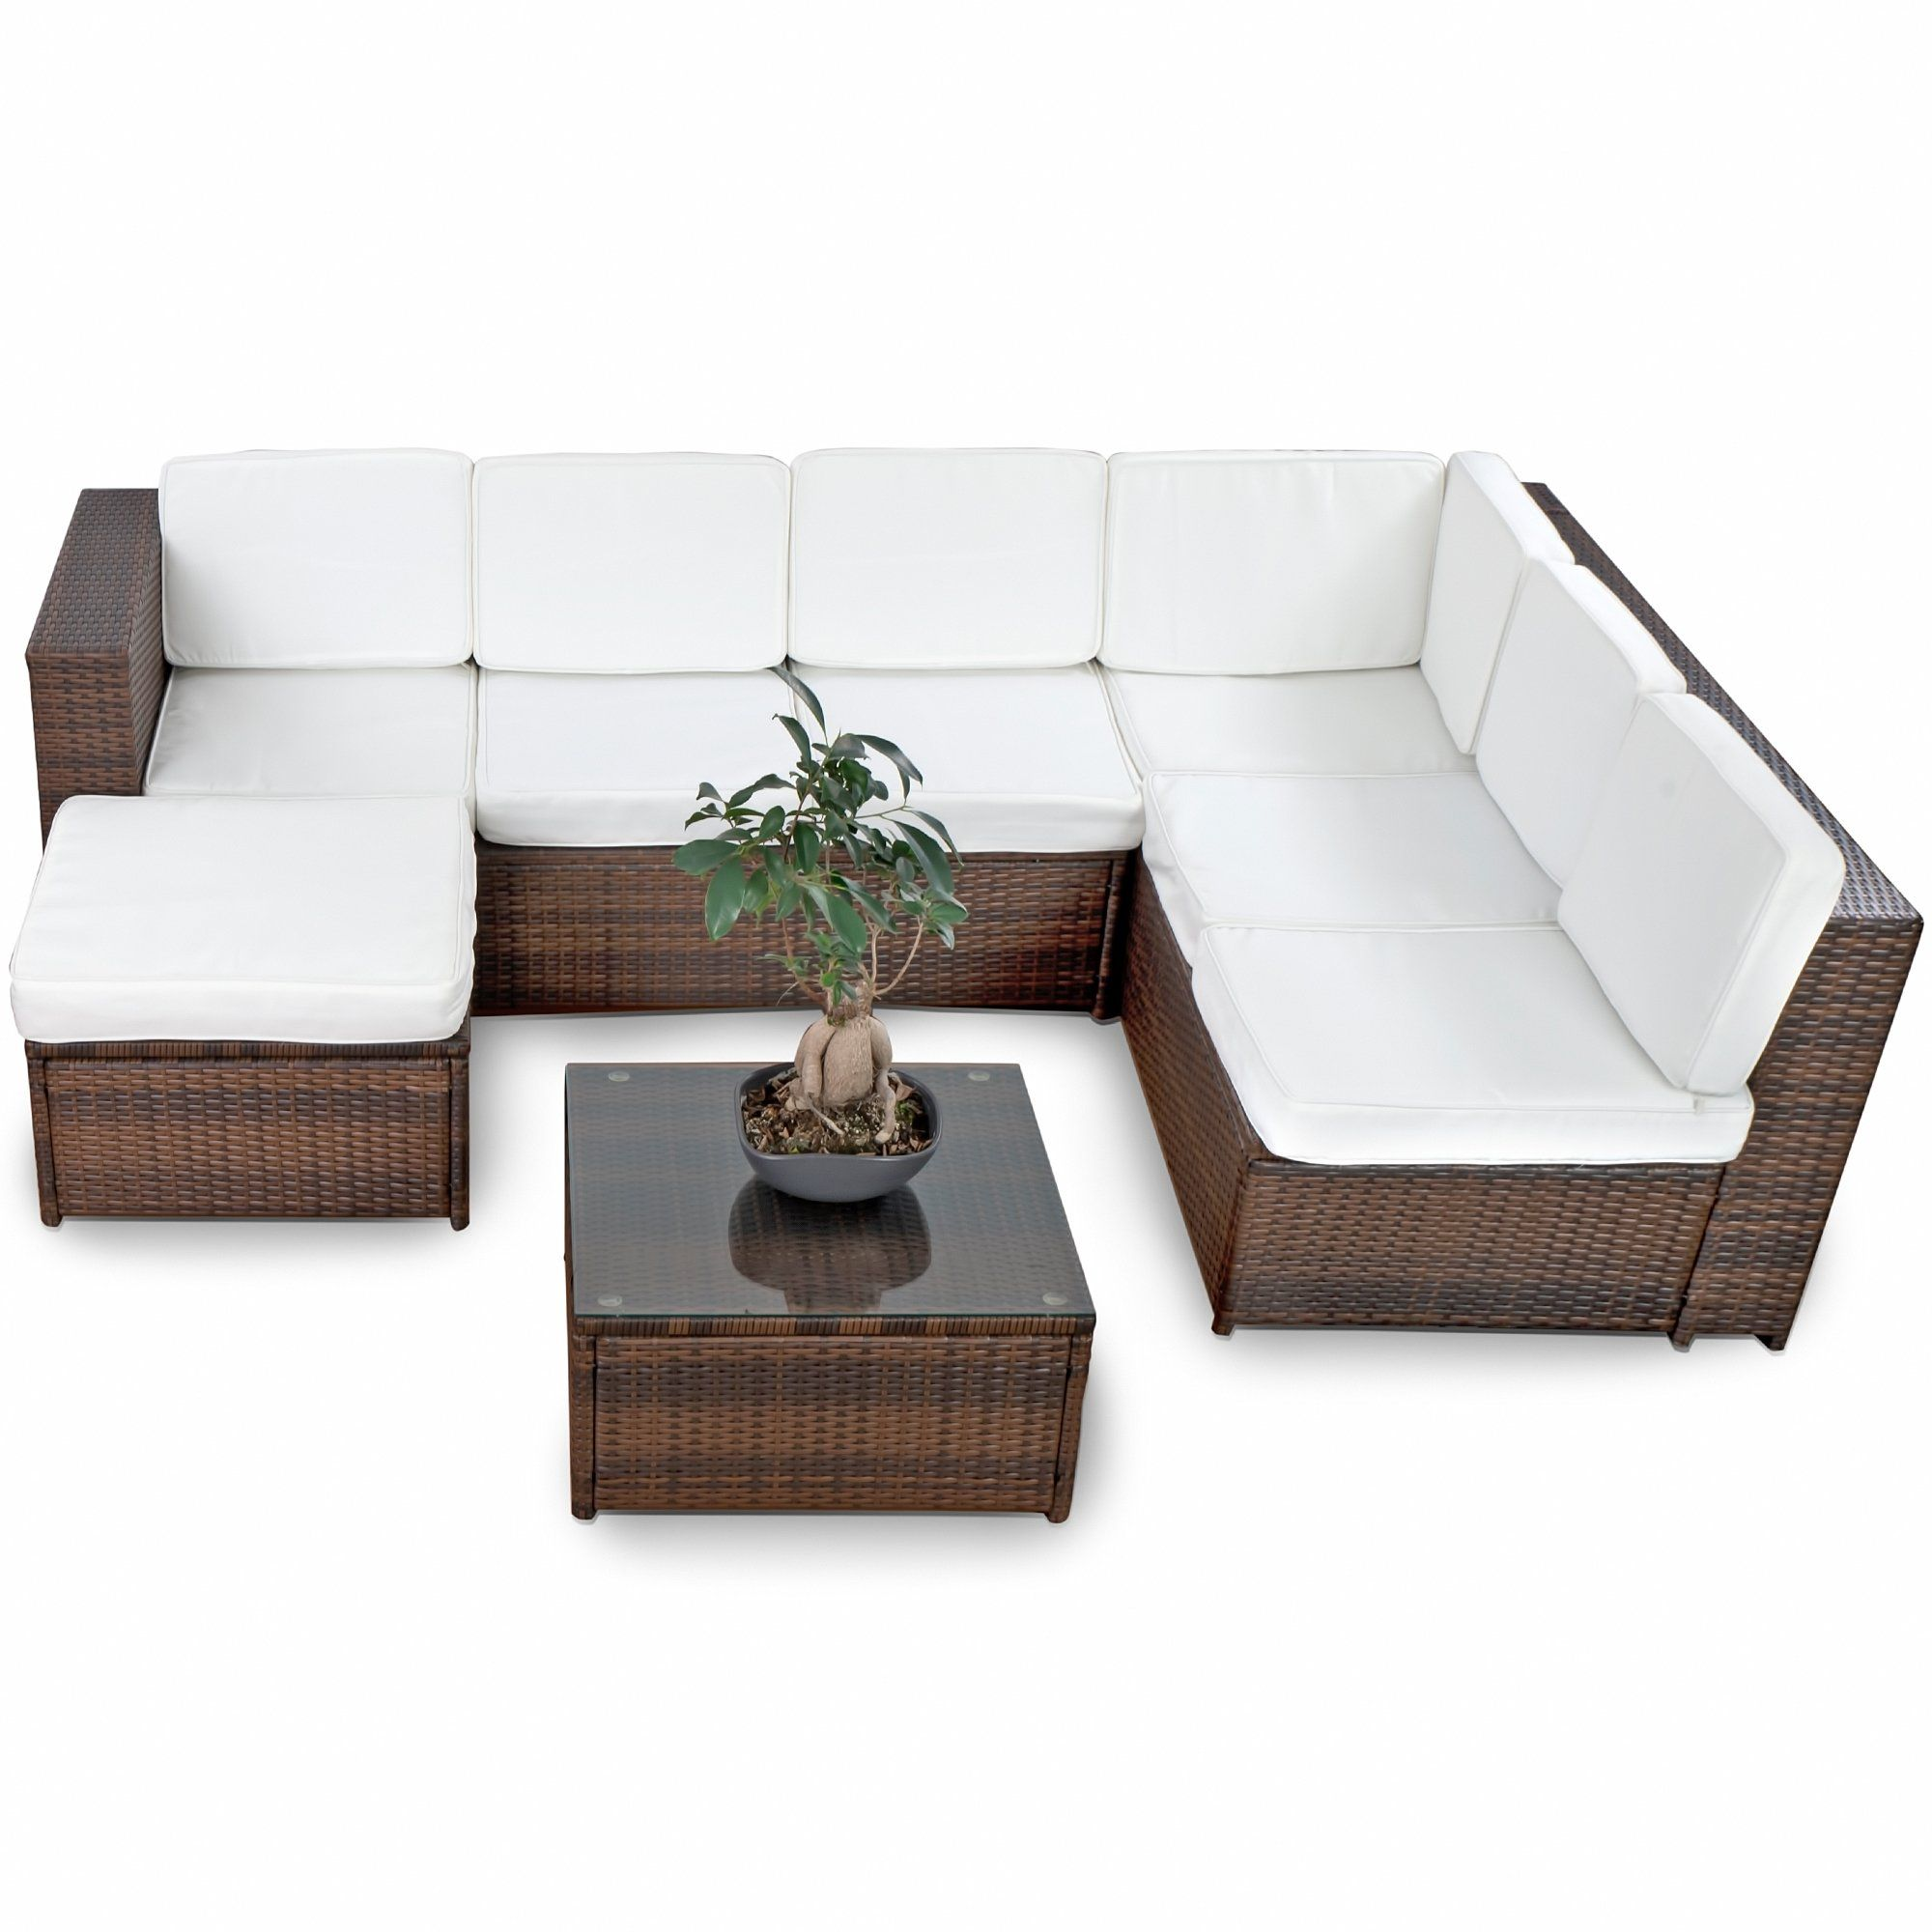 xinro 19tlg xxxl polyrattan gartenm bel lounge sofa g nstig lounge m bel lounge set polyrattan. Black Bedroom Furniture Sets. Home Design Ideas